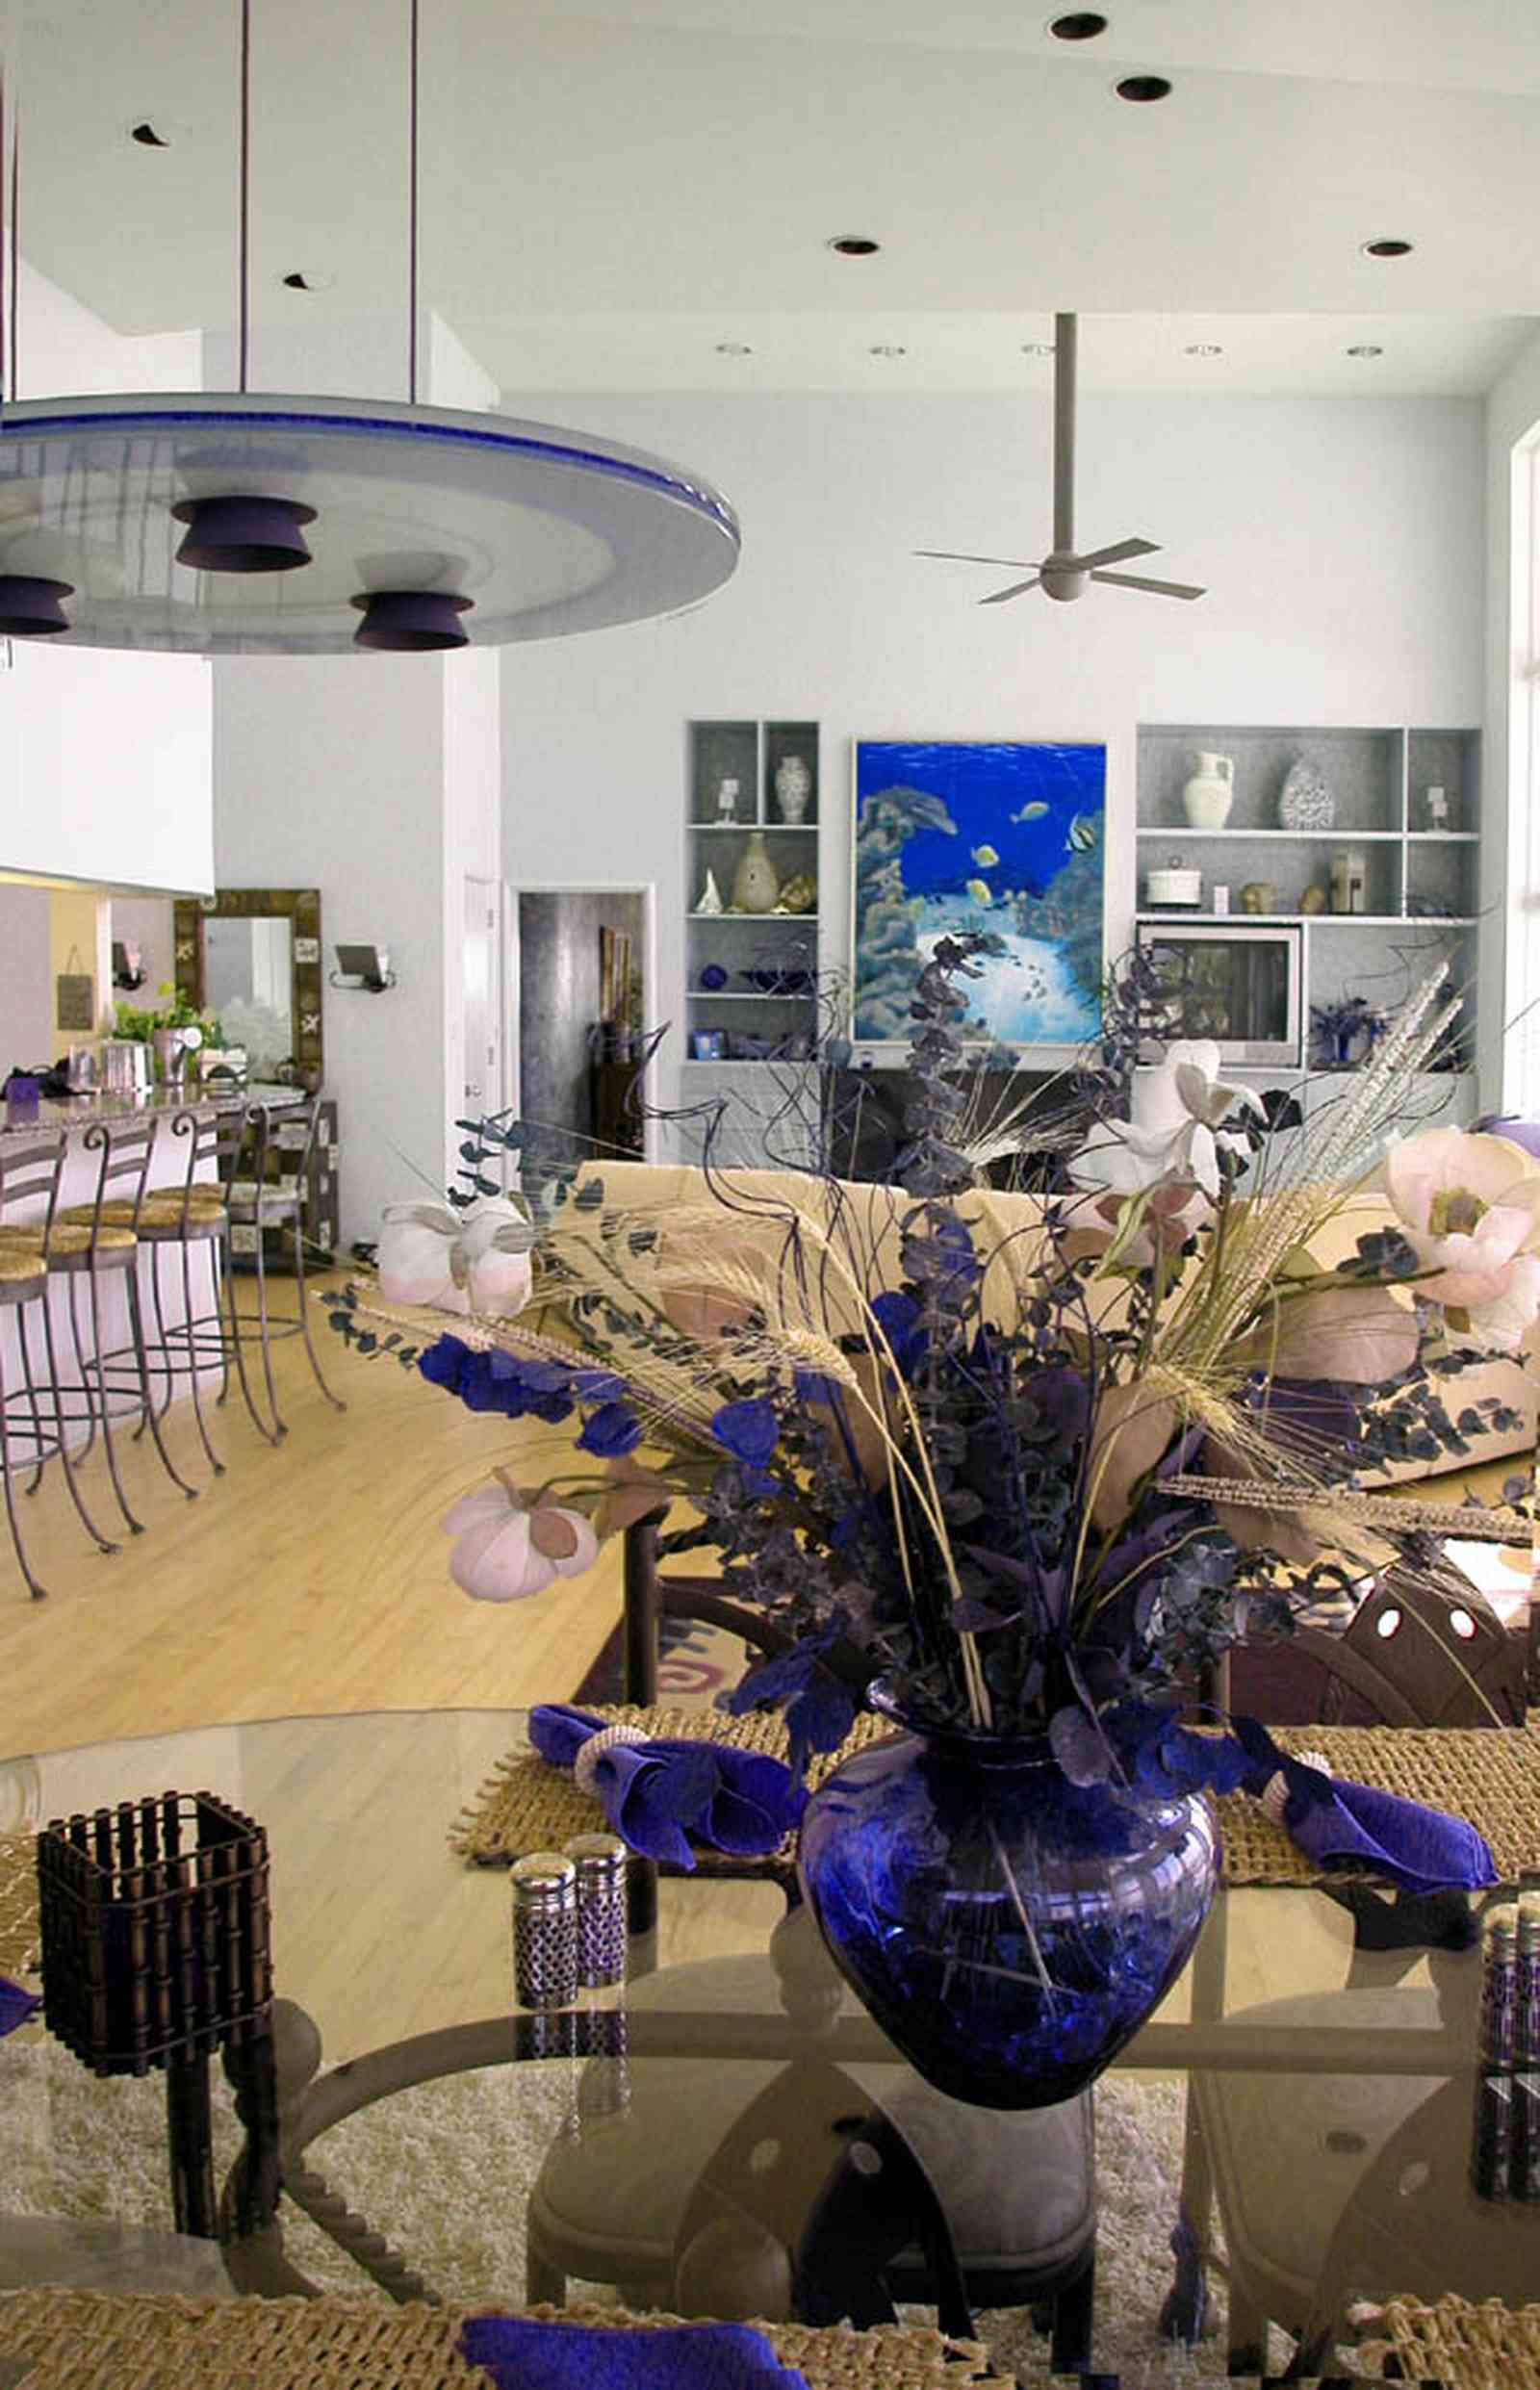 Pensacola-Beach:-Ariola-Drive-Art-Deco-House_29.jpg:  flower arrangement, glass table, open floor arrangement, bar stools, kitchen counter, wooden floors, beach front home